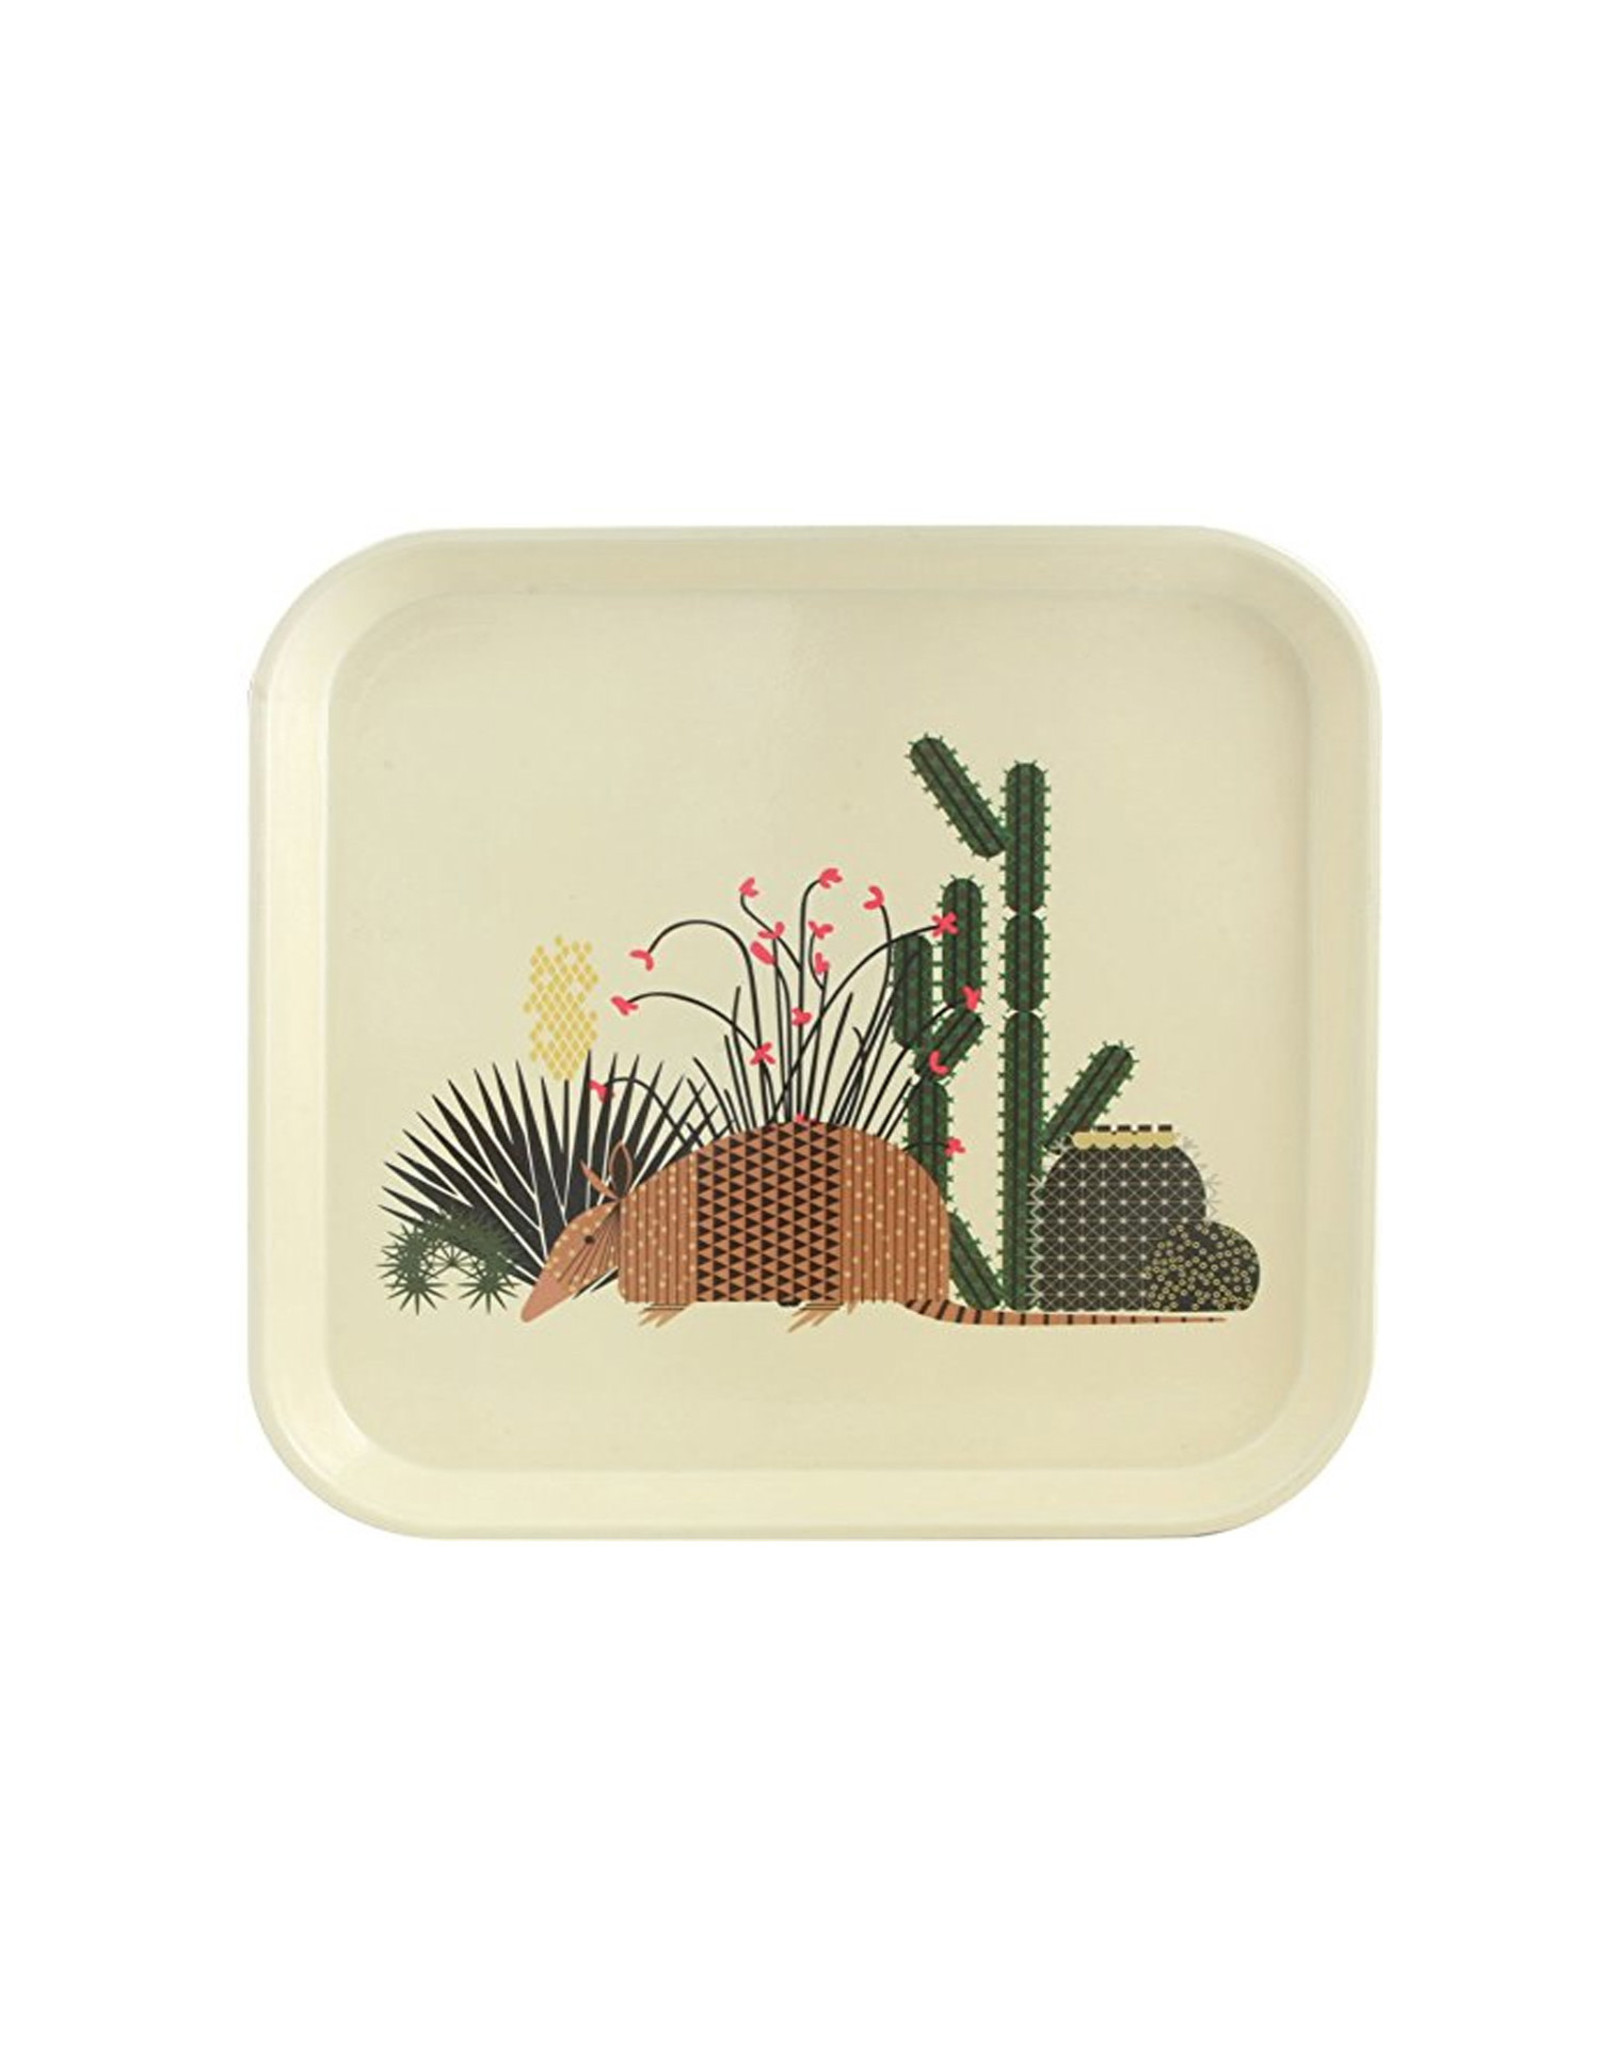 Charley Harper Tray, Cactus